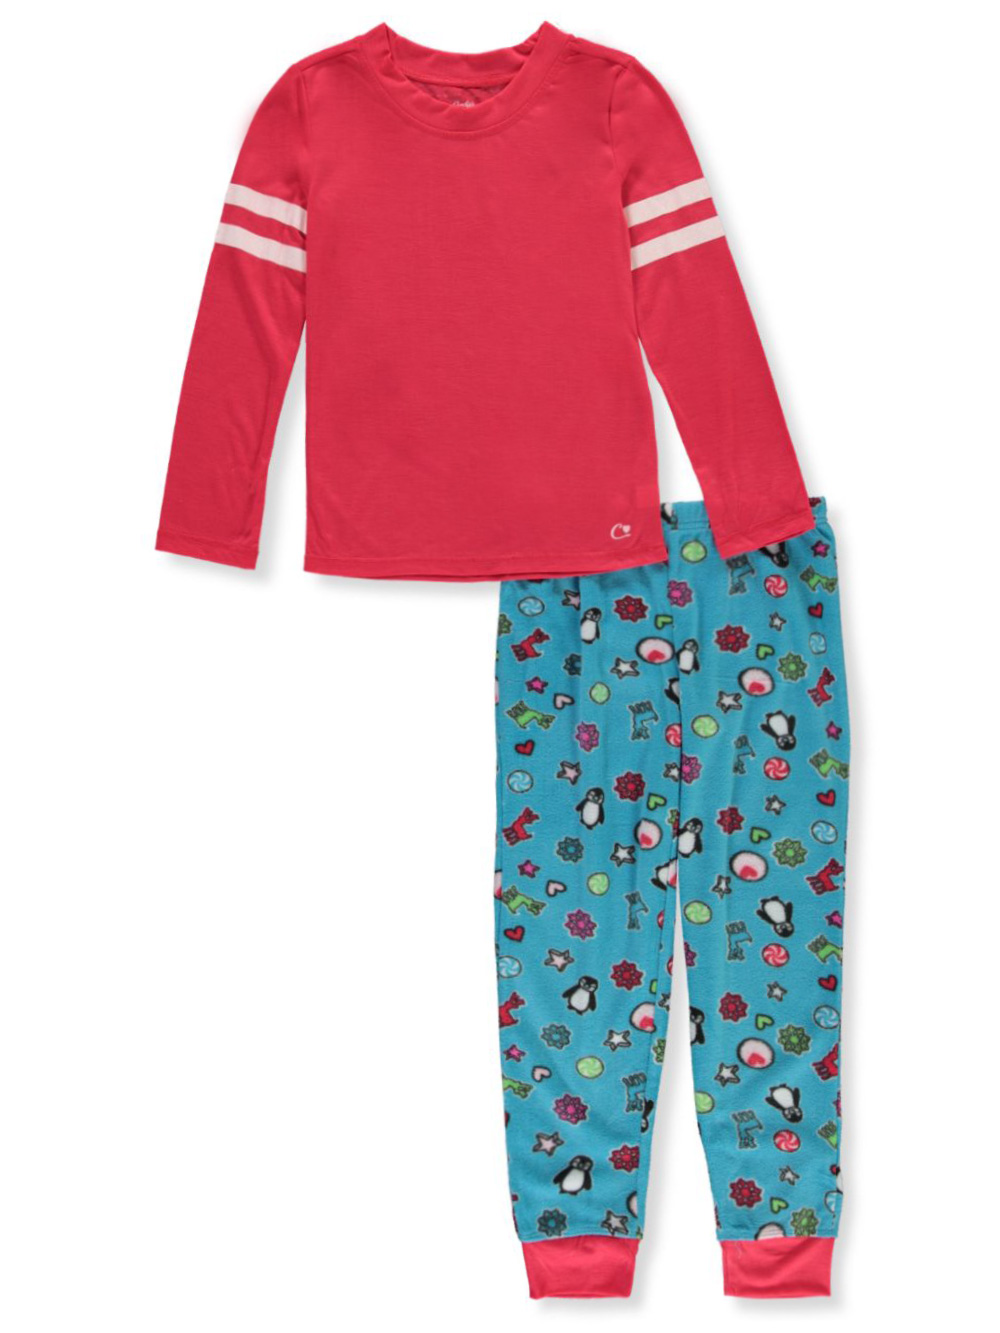 Size 8-10 Pajamas for Girls